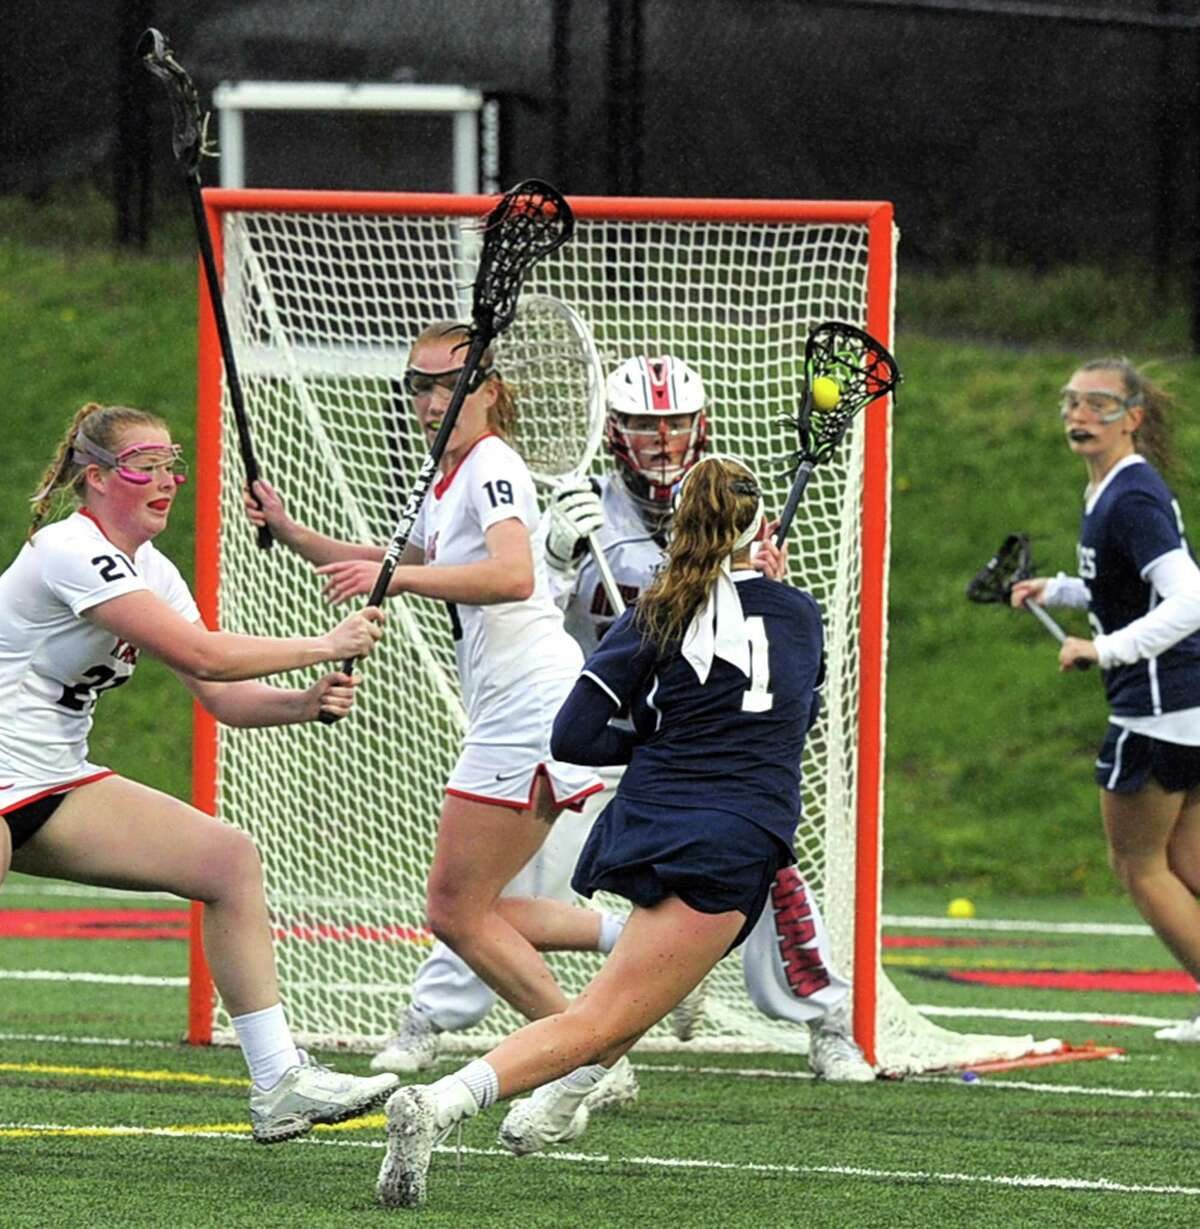 Staples Ellen Fair fires a shot on New Canaan goalie Caroline O'Dea in a varsity girls lacrosse game at New Canaan High School Dunning Field on Tuesday, April 25, 2017. New Canaan defeated Staples 16-8.